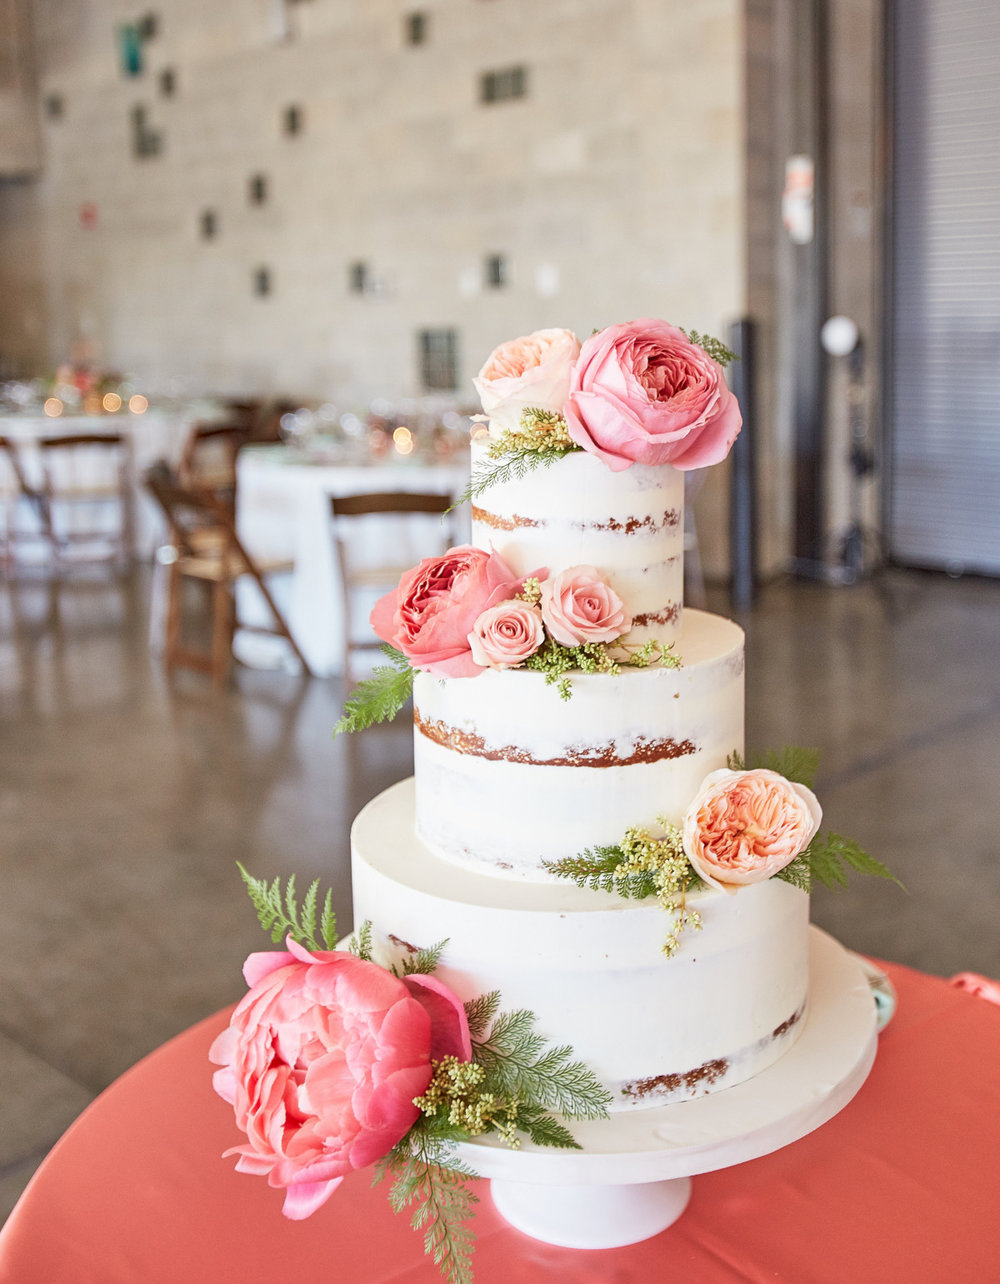 Top 18 semi naked wedding cakes with flowers the bohemian wedding three tier semi naked wedding cake with pink flowers mightylinksfo